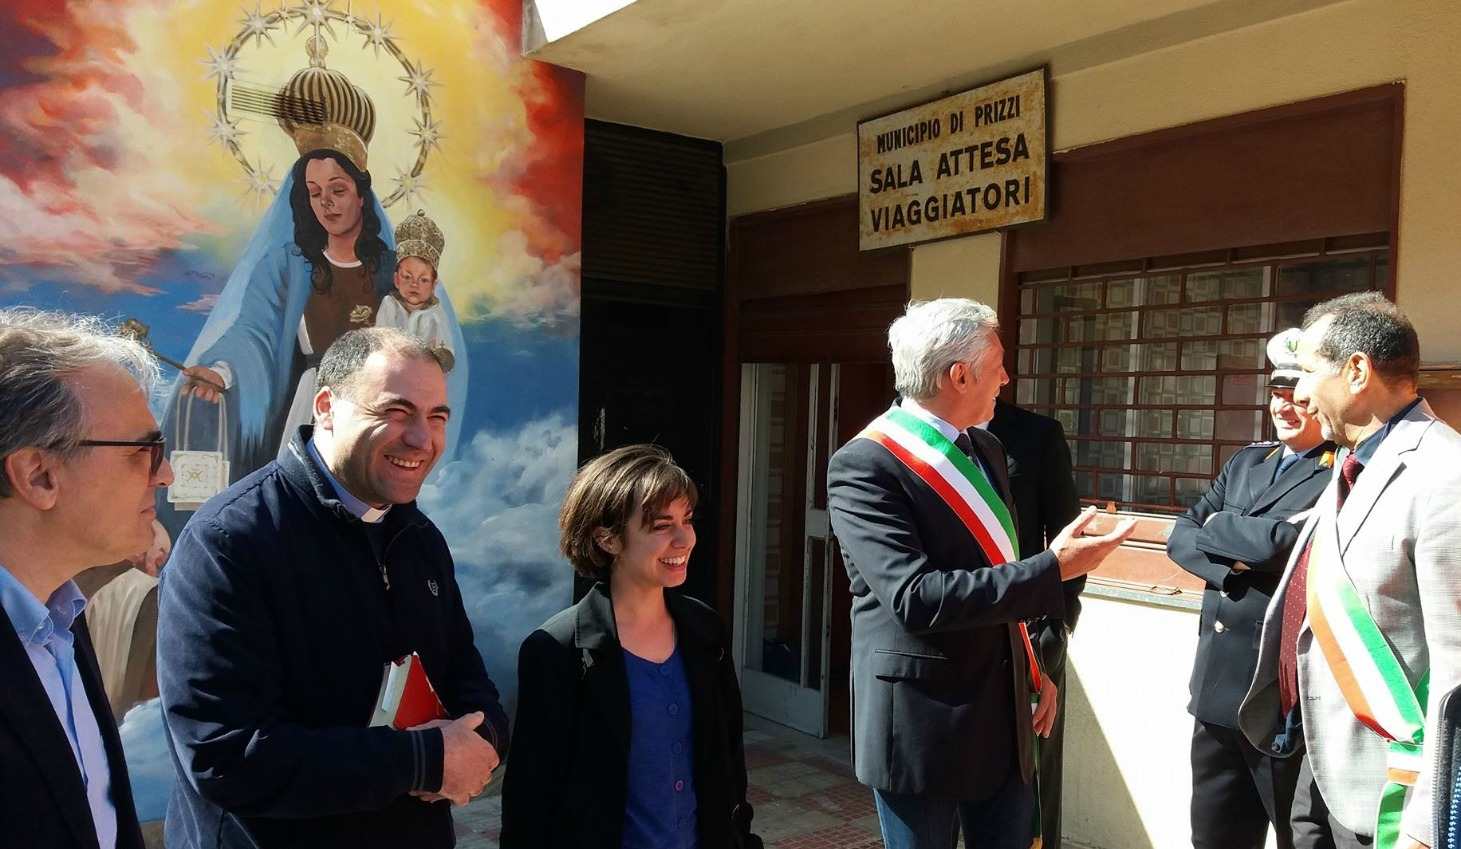 Olivia Cole (center) at the official unveiling of her Our Lady of Mount Carmel with town council member Giuseppe Castelli (far left) and Mayor Luigi Vallone (in sash).